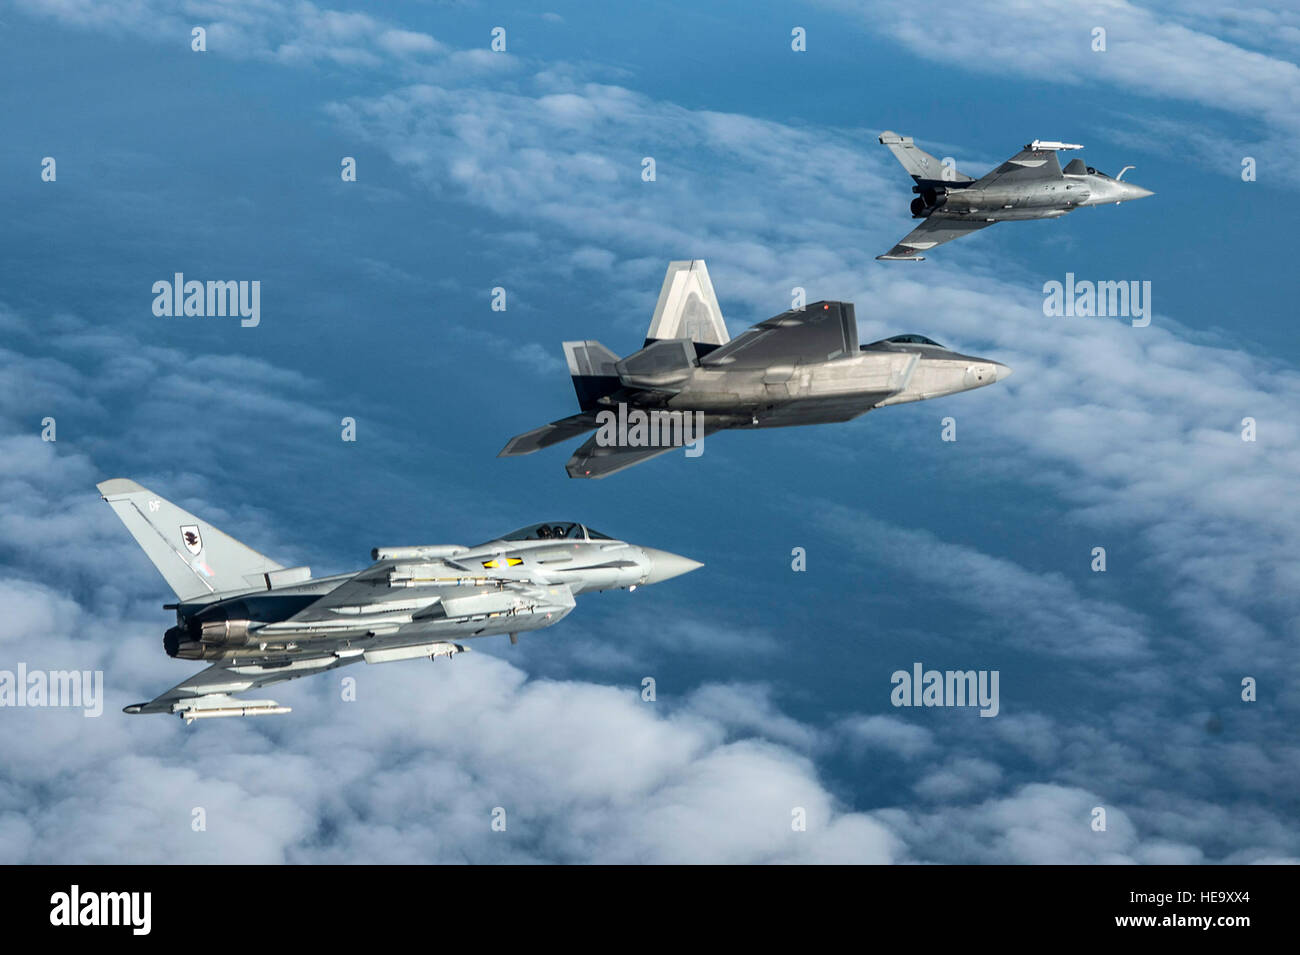 A British Royal Air Force Typhoon, U S  Air Force F-22 Raptor and